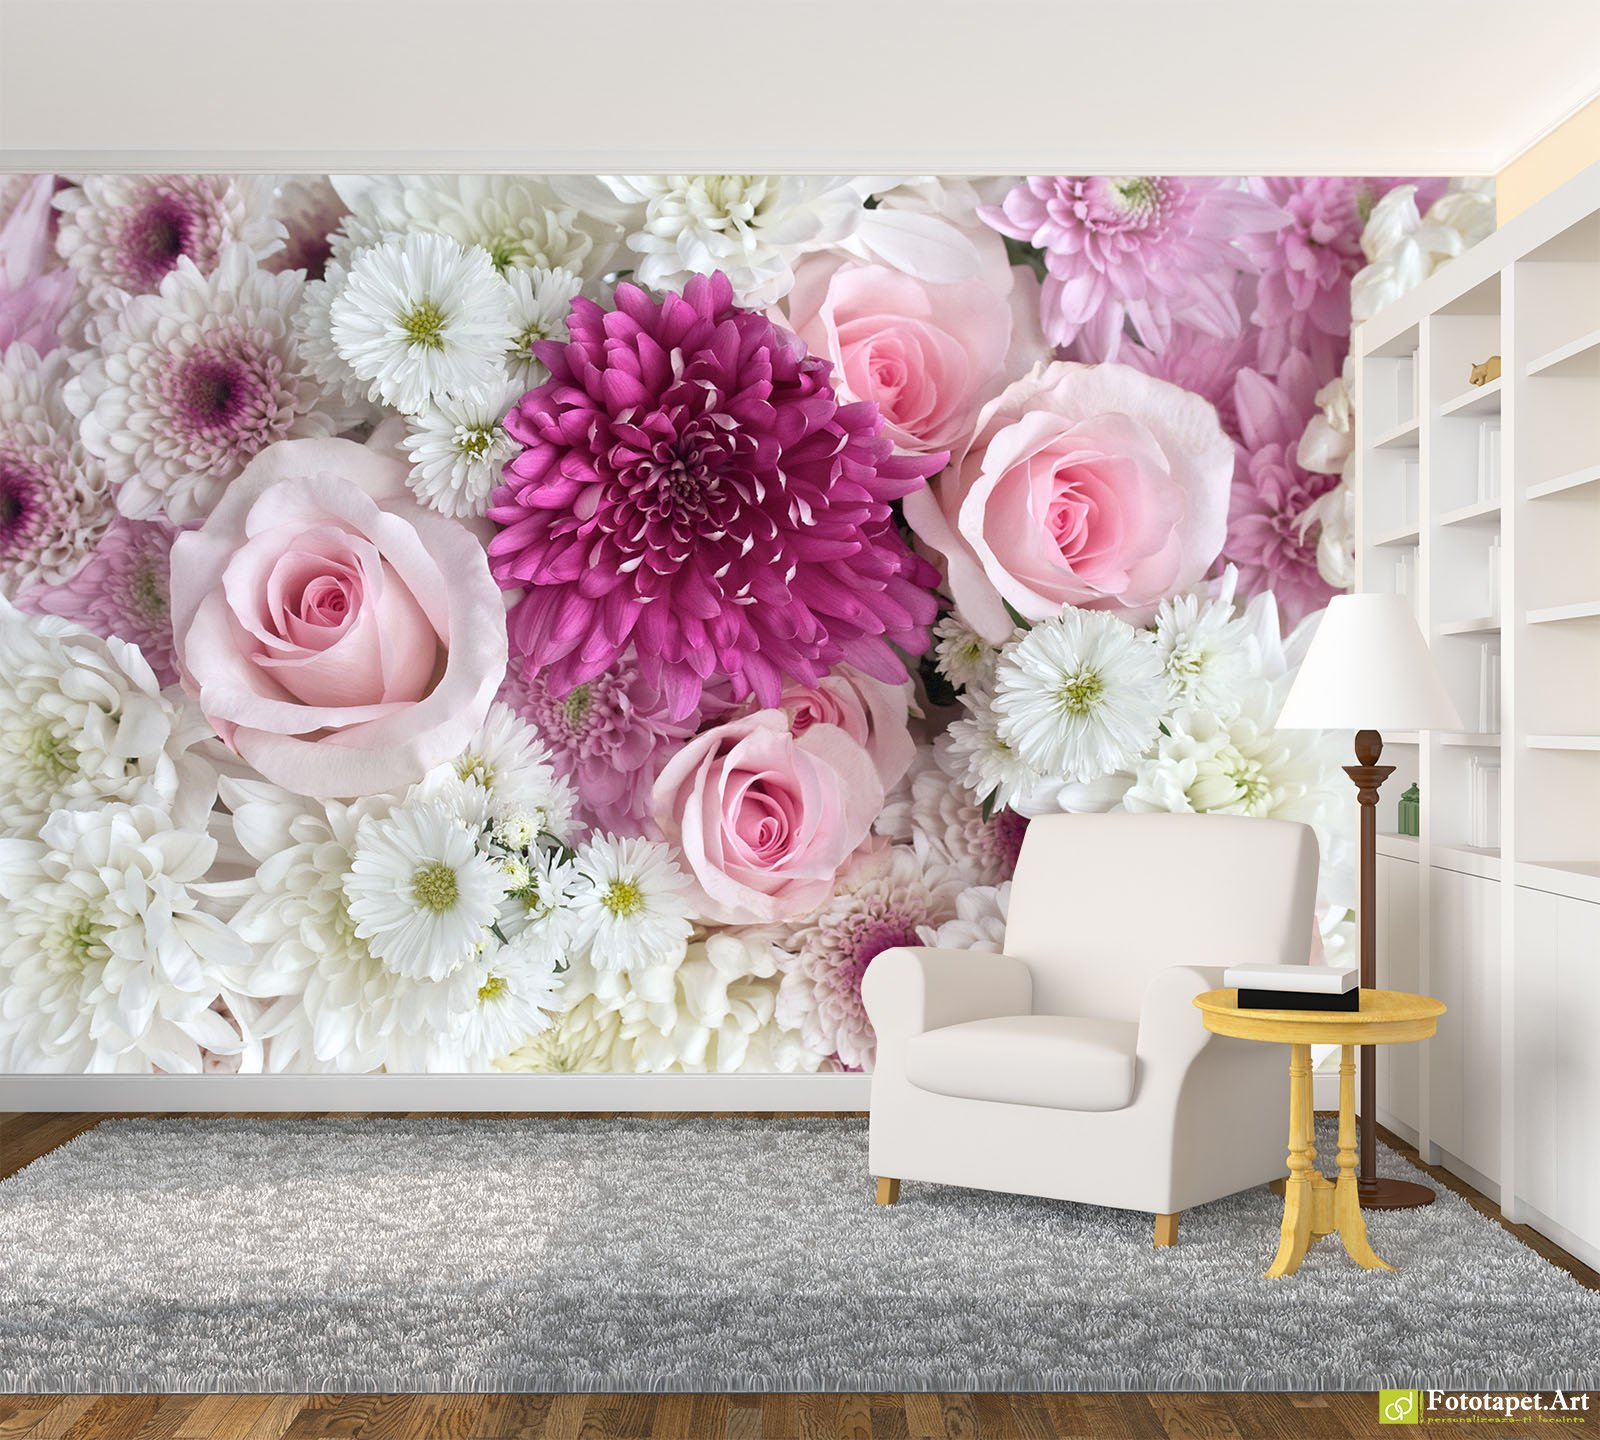 photo wallpaper, flowers - flower arrangement_2 | fototapet.art